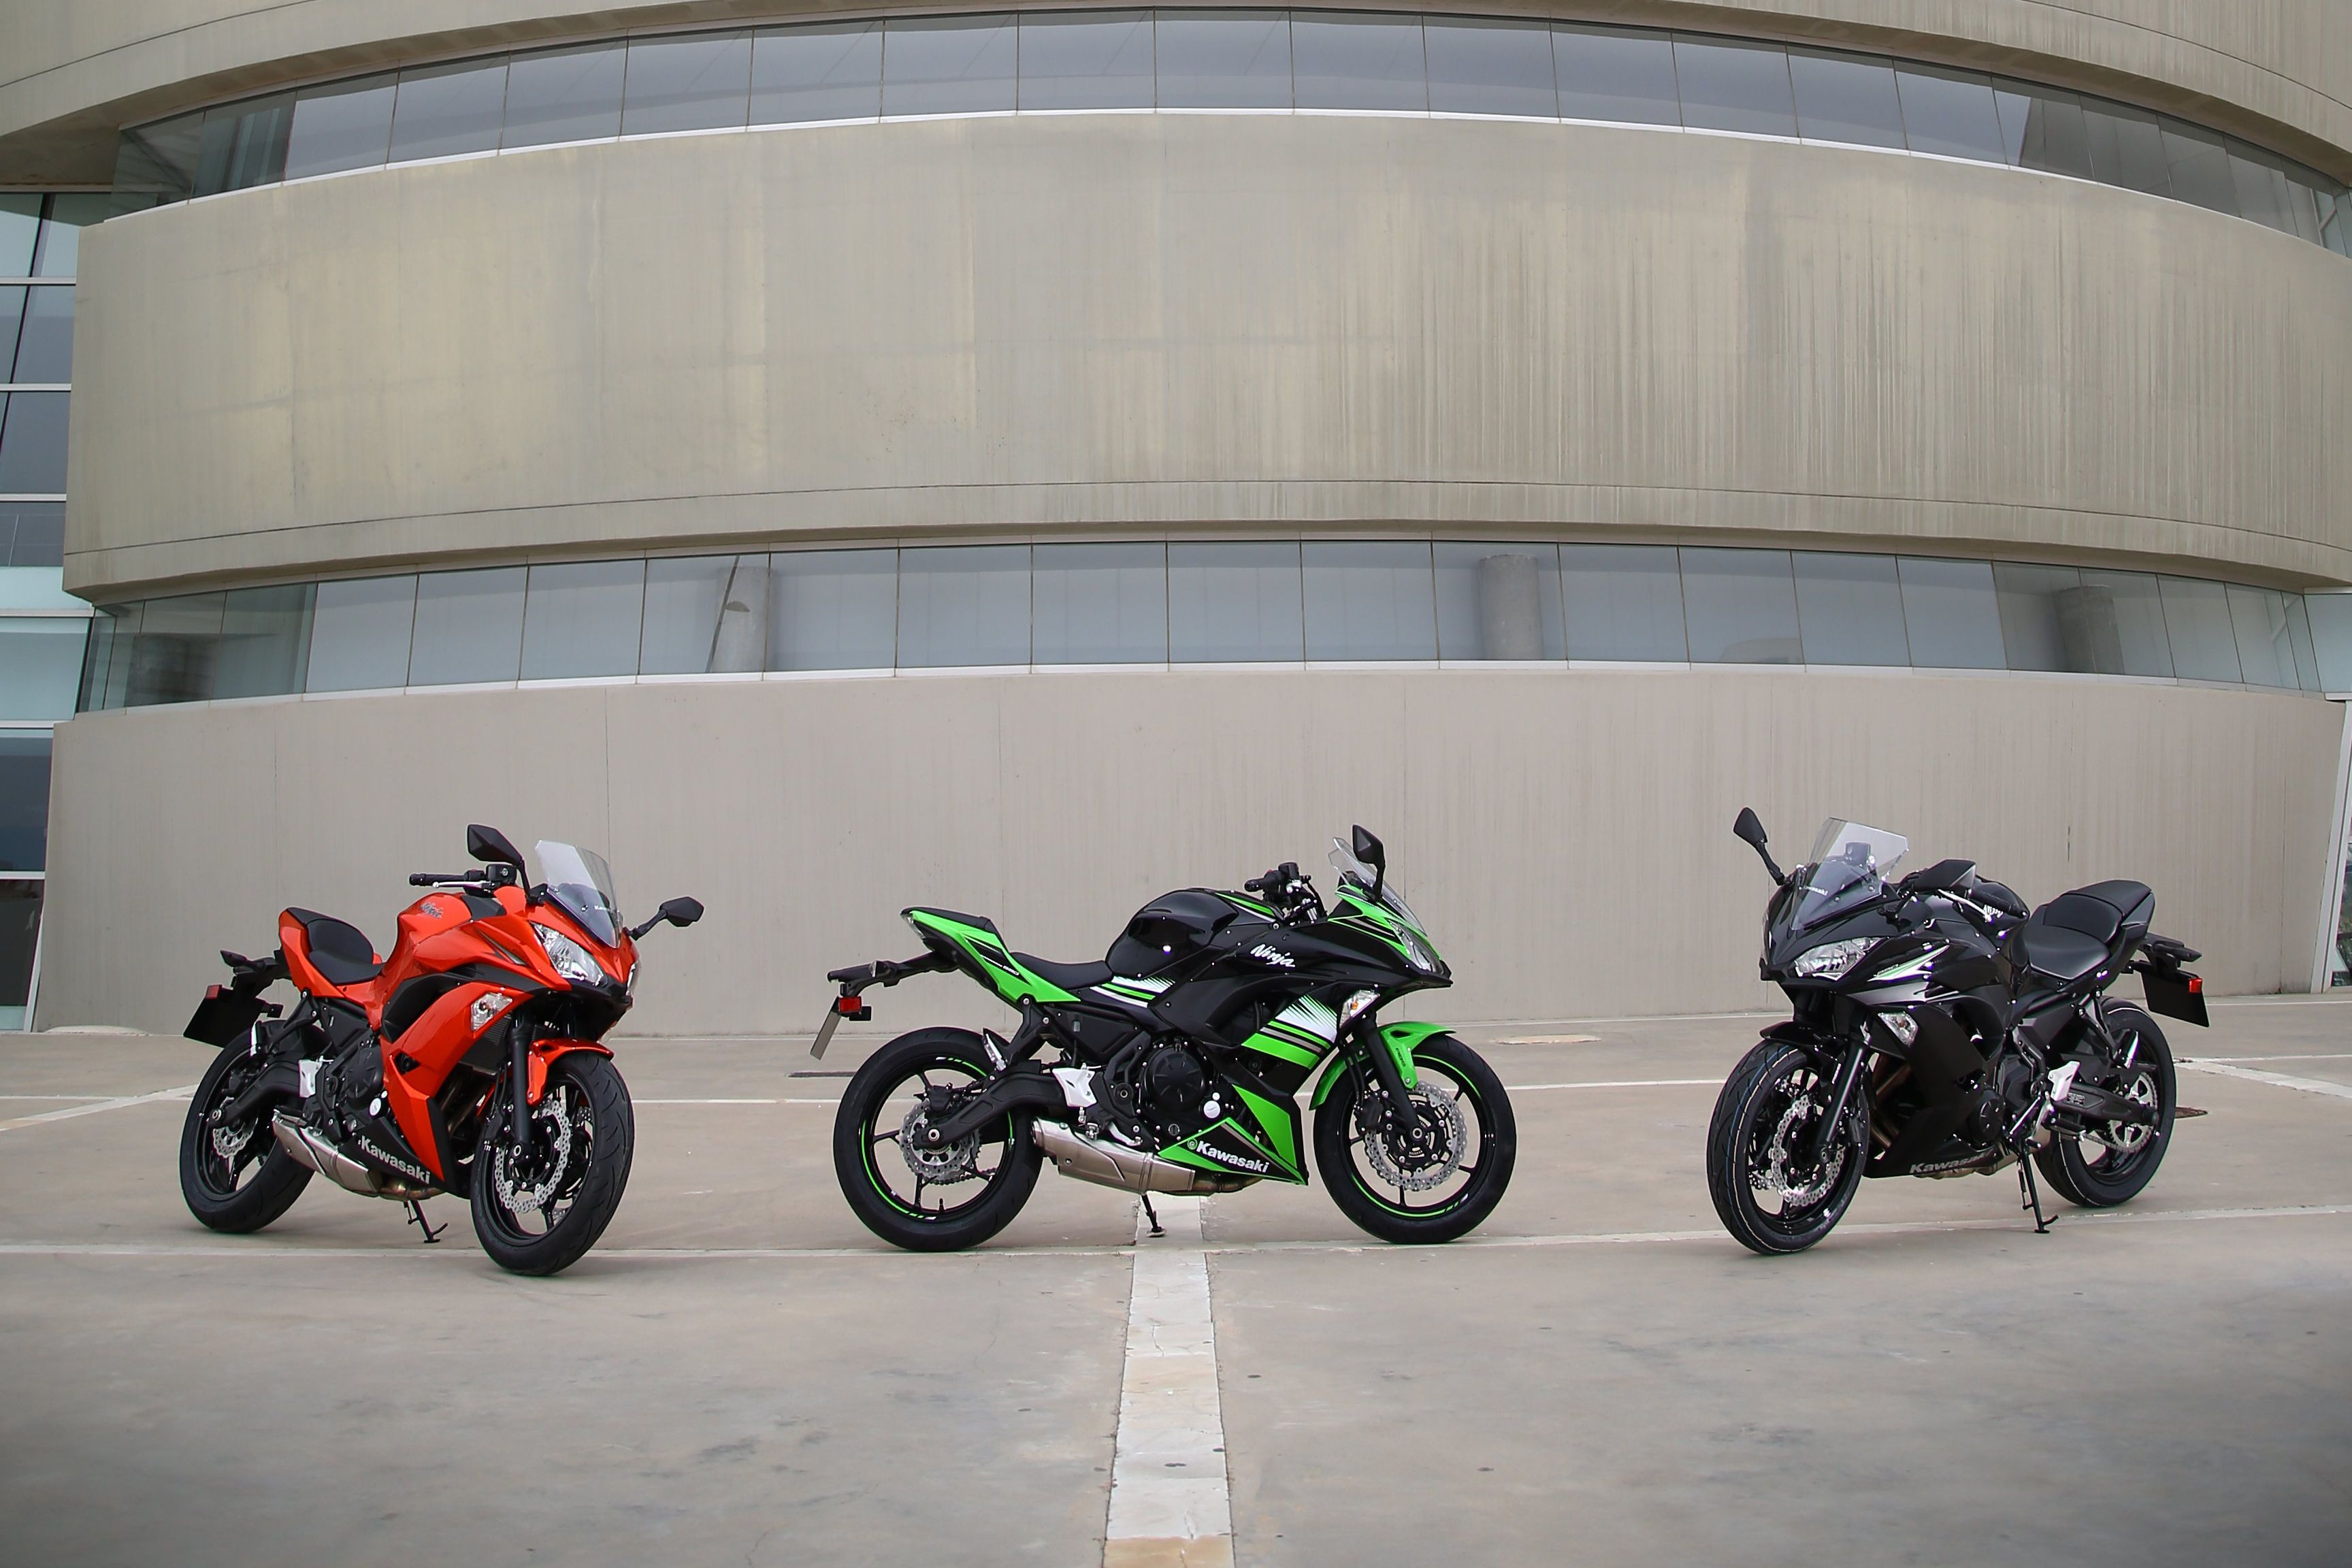 Kawasaki Ninja 650 first ride review with price and spec | Visordown